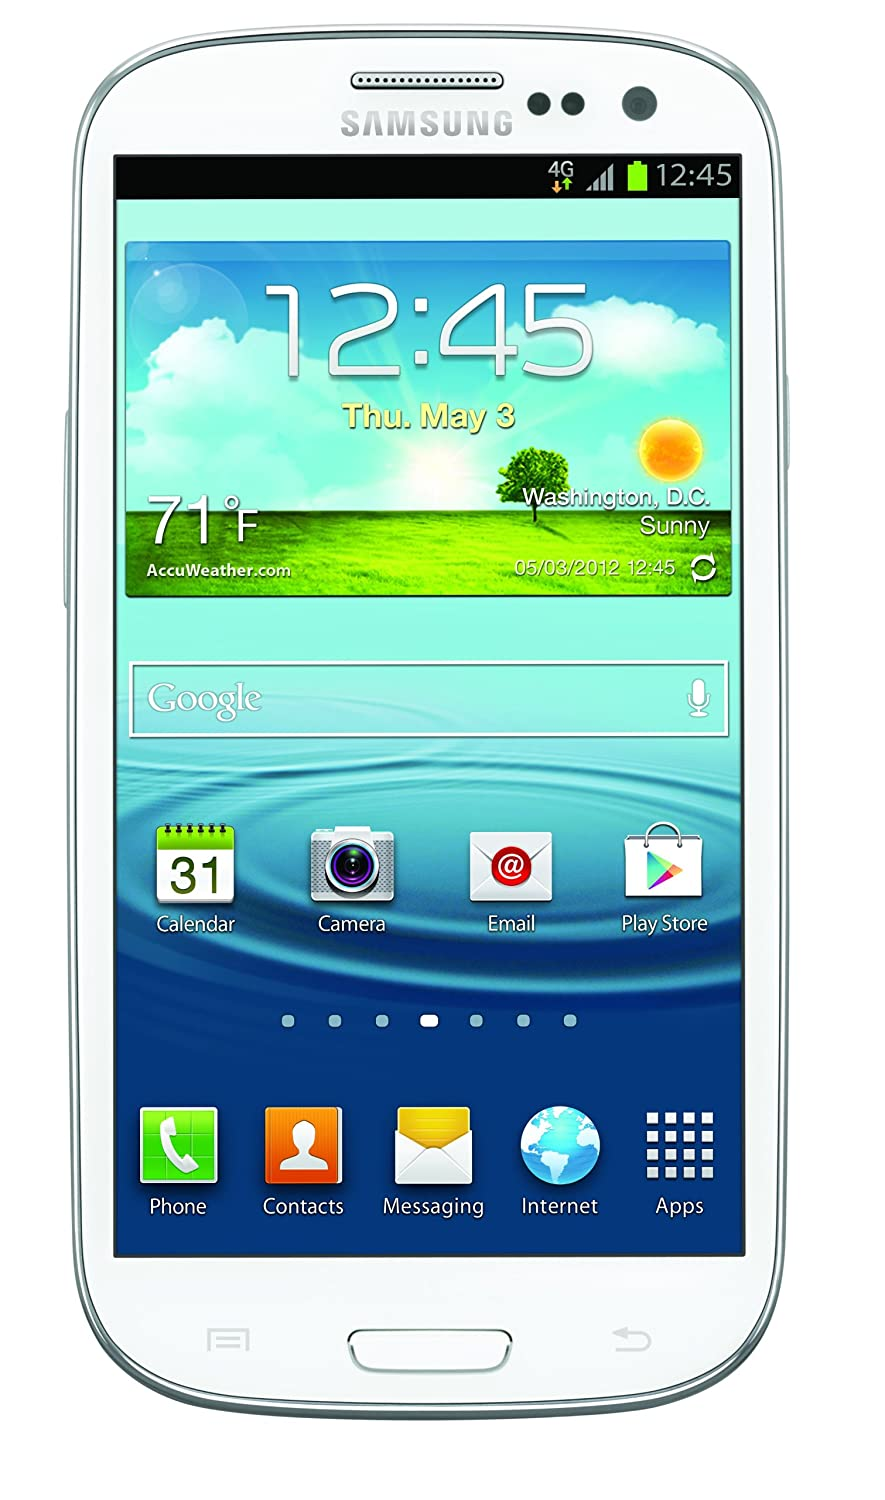 Camera Boost Mobile Android Phones For Sale amazon com samsung galaxy s iii s3 triband white boost mobile cell phones accessories